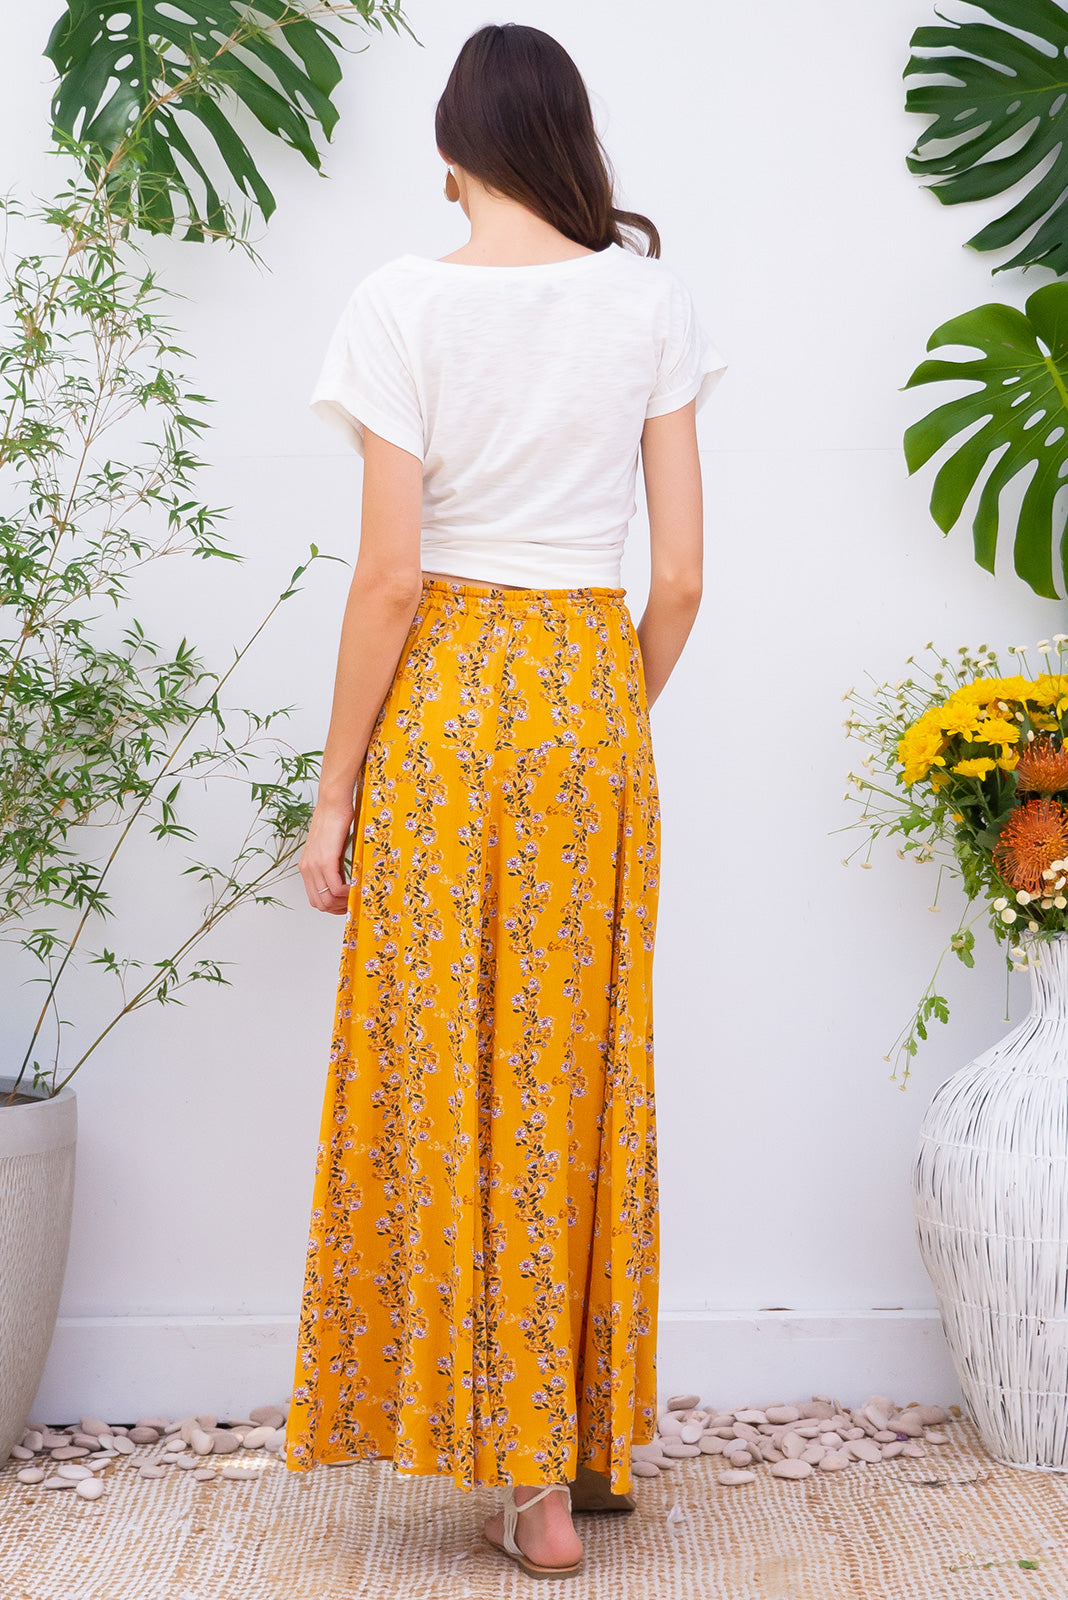 Sahara Skirt Golden Vines bohemian inspired maxi skirt in a crinkle textured 100% rayon with a strong golden yellow vines and daisy print